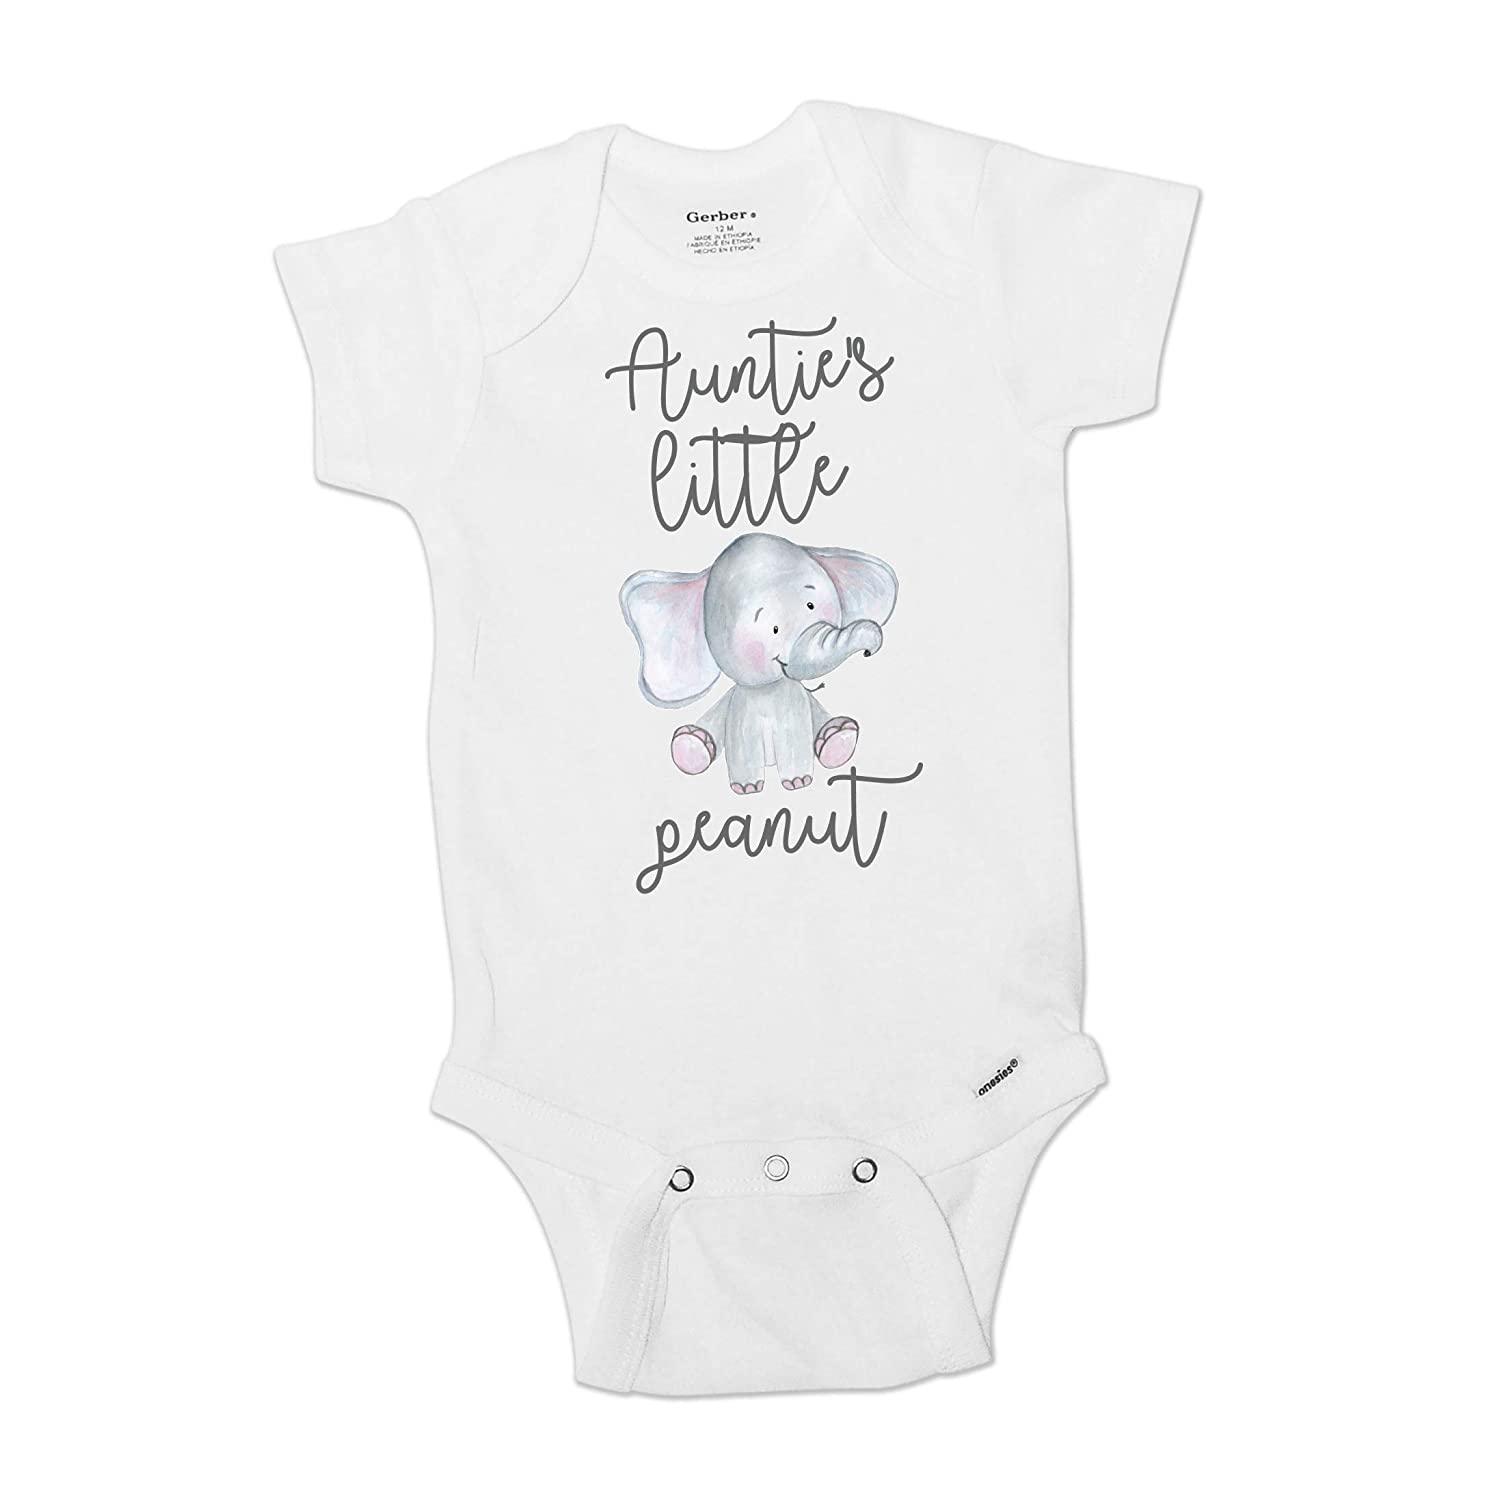 Cute and funny baby boy or girl peanut romper Little peanut baby clothes Modern baby clothes. many colors available